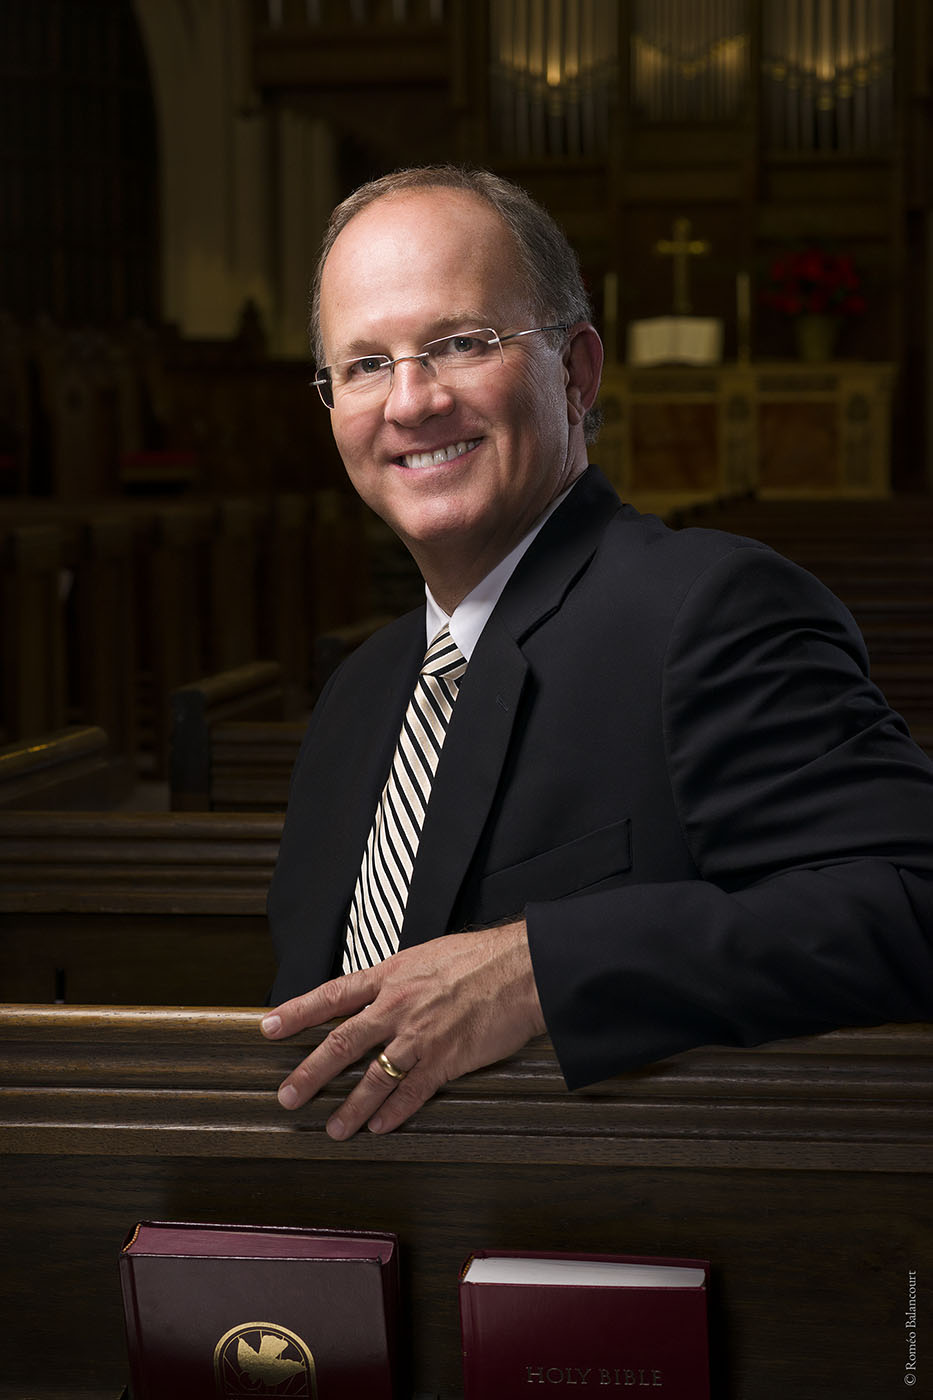 The Rev. Dr. Scott Herr, Senior Pastor